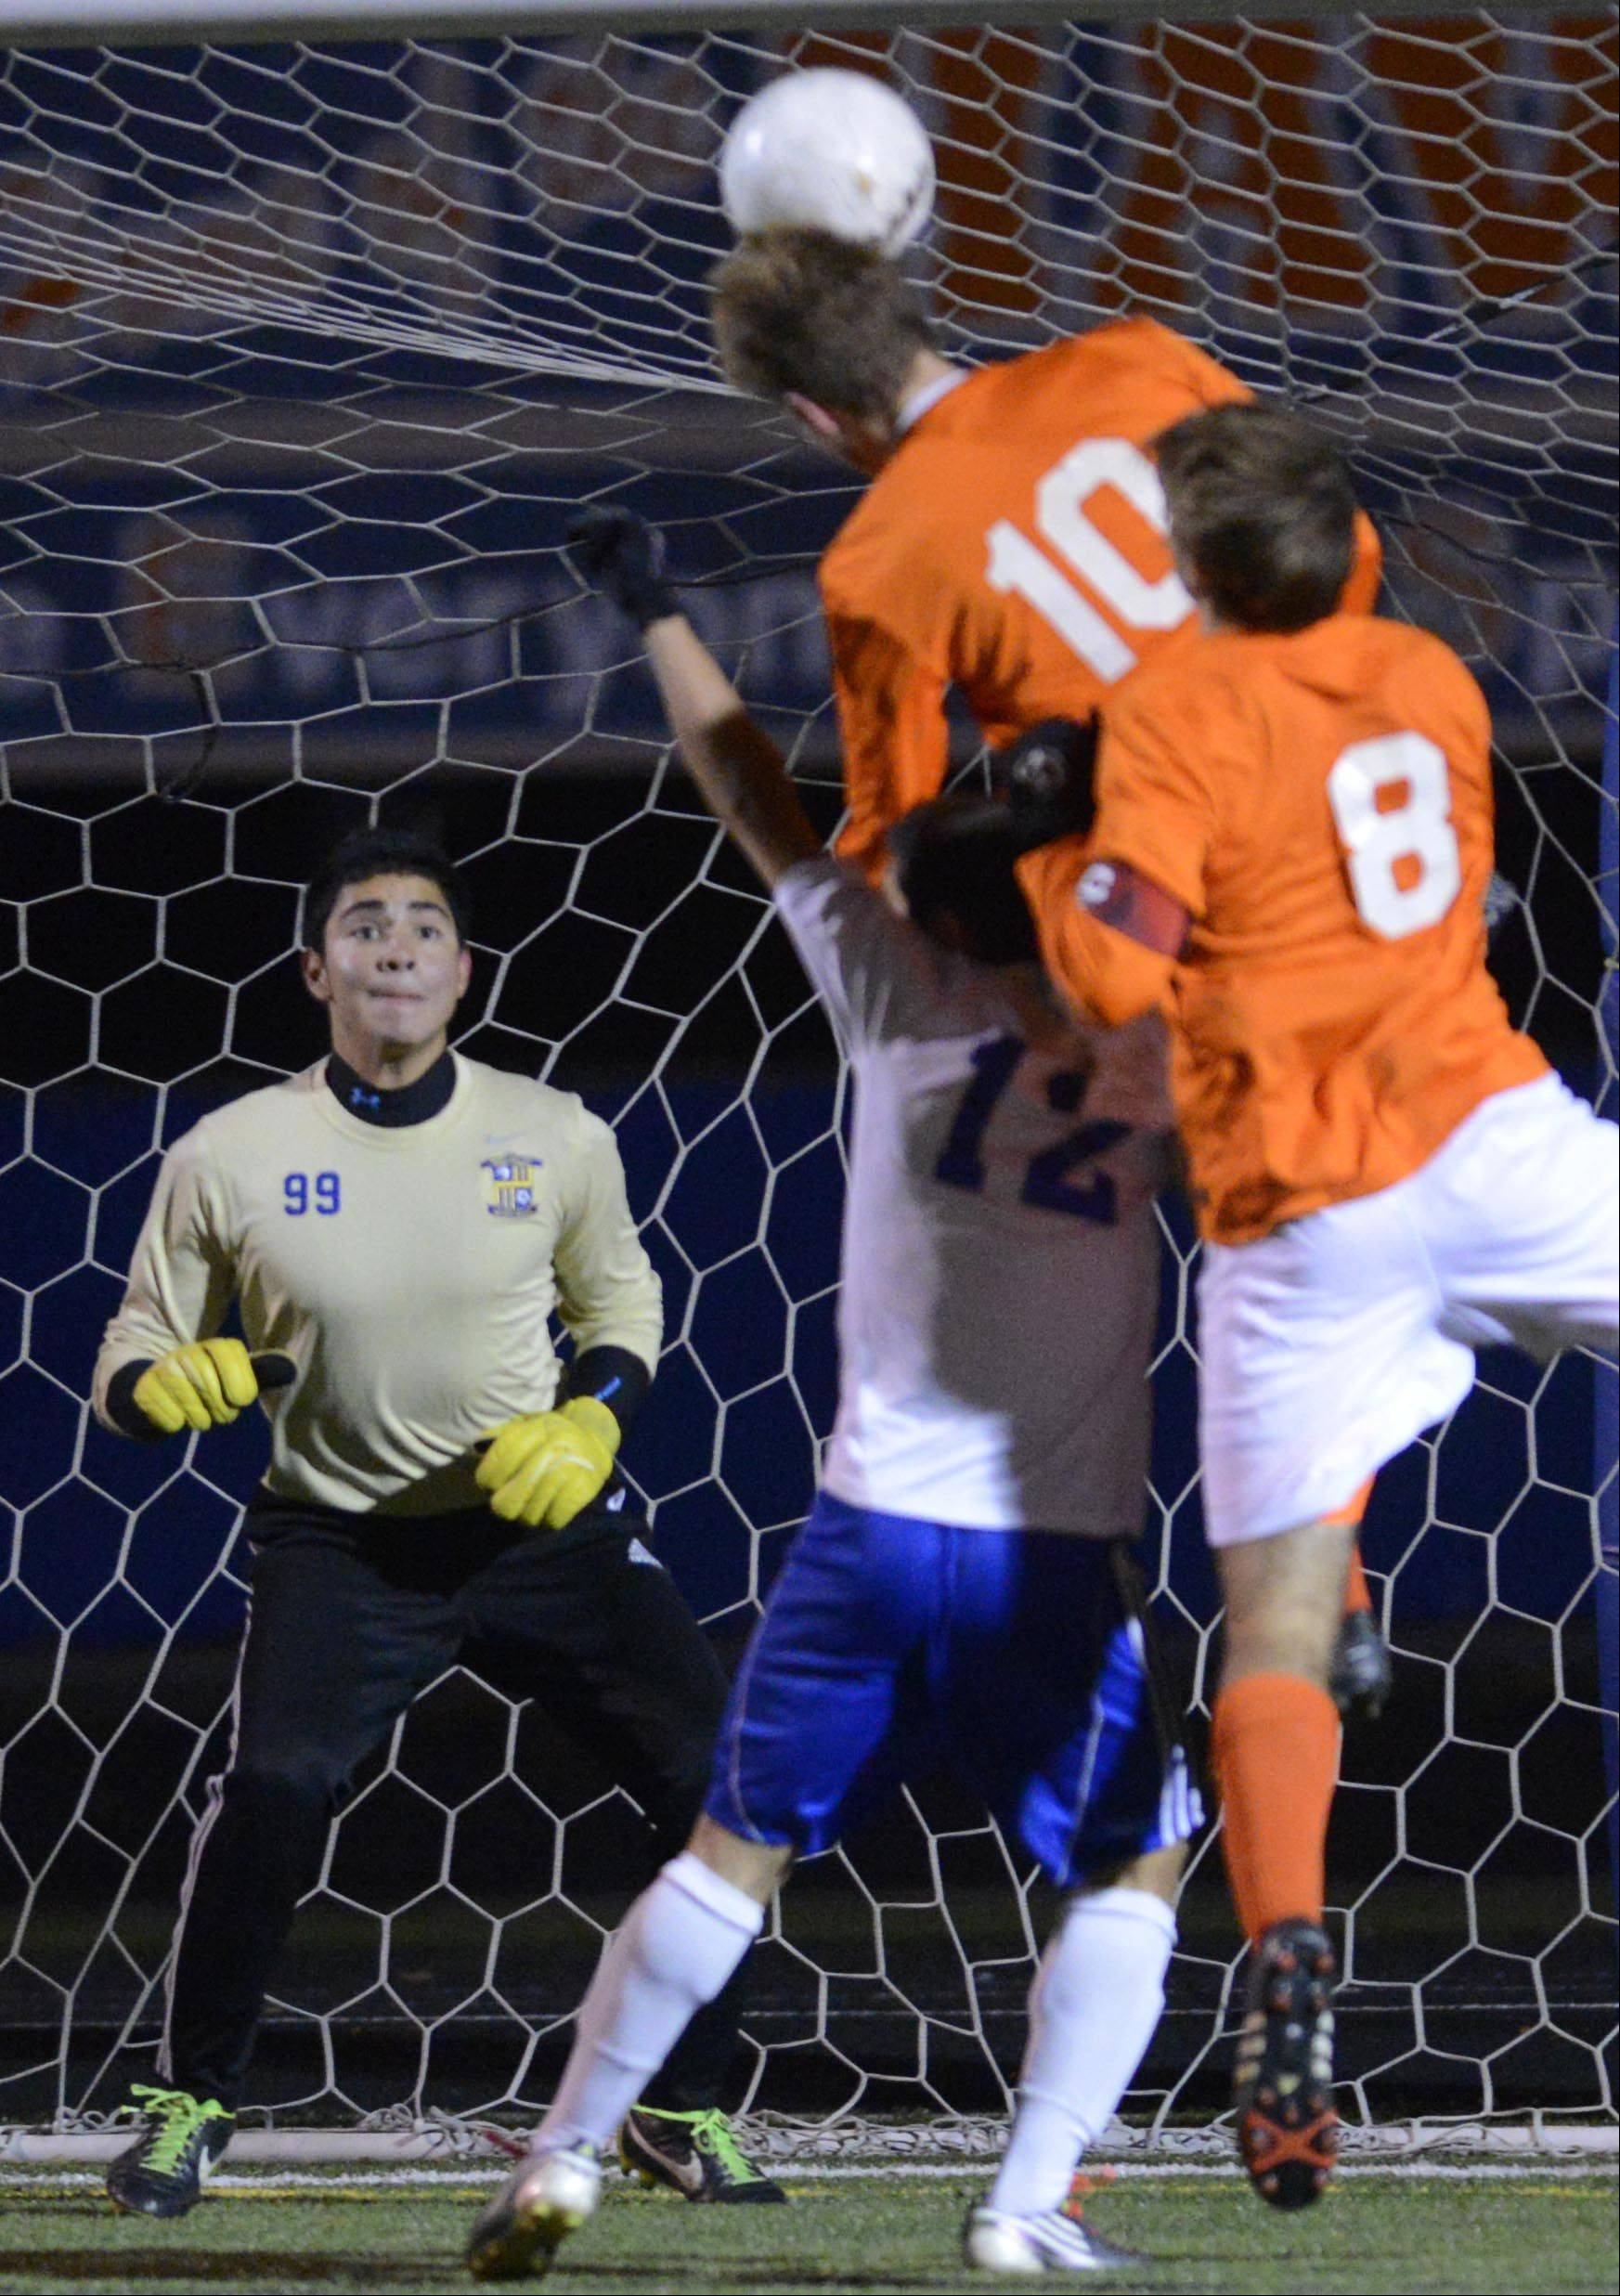 Wheeling goalkeeper Gary Mendoza defends the net as teammate Alfredo Rocha tries to stop Edwardsville's Landon Paul from sending a header into the net in the Class 3A soccer state championship game Saturday night in Hoffman Estates. Mendoza stopped the shot.